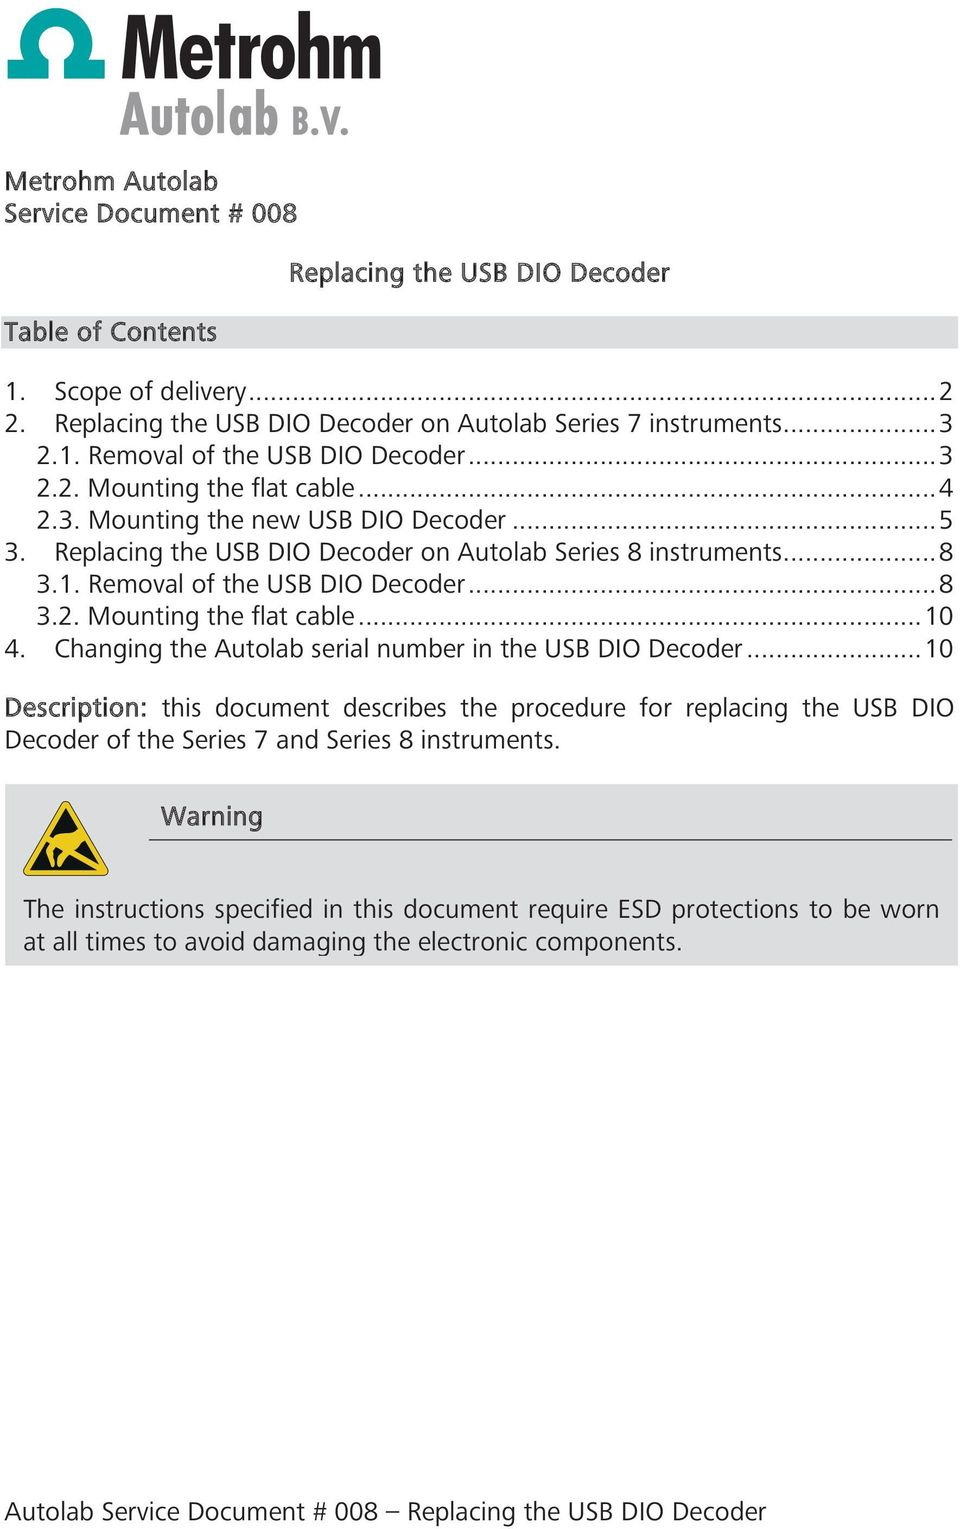 Replacing the USB DIO Decoder - PDF